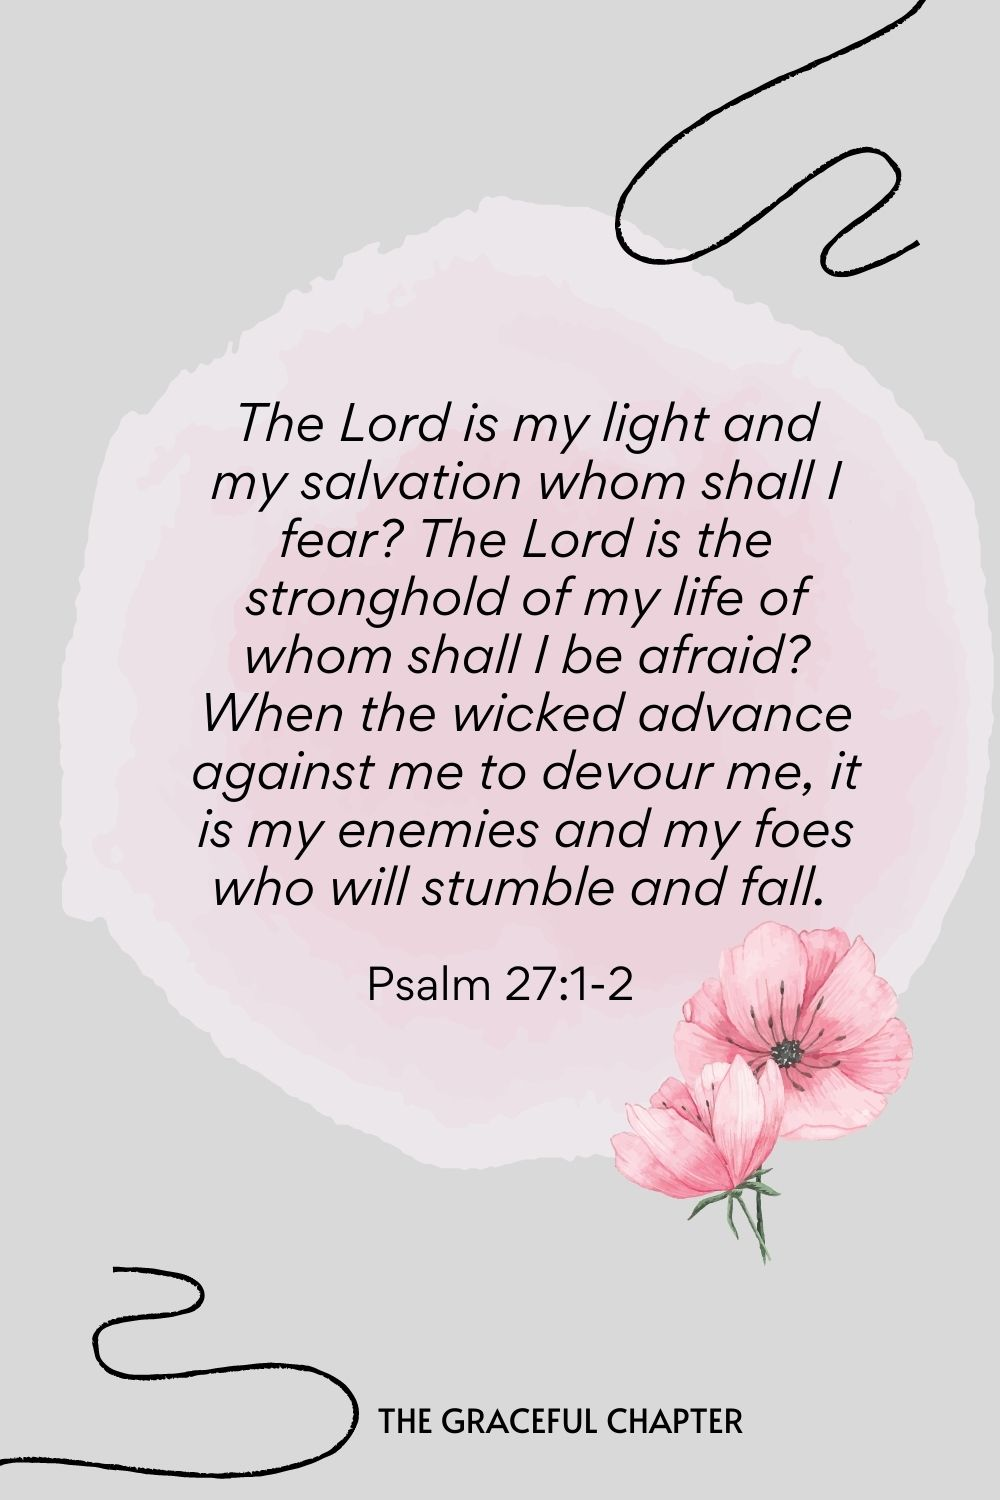 The Lord is my light and my salvation whom shall I fear? The Lord is the stronghold of my life of whom shall I be afraid? When the wicked advance against me to devour me, it is my enemies and my foes who will stumble and fall.  Psalm 27:1-2